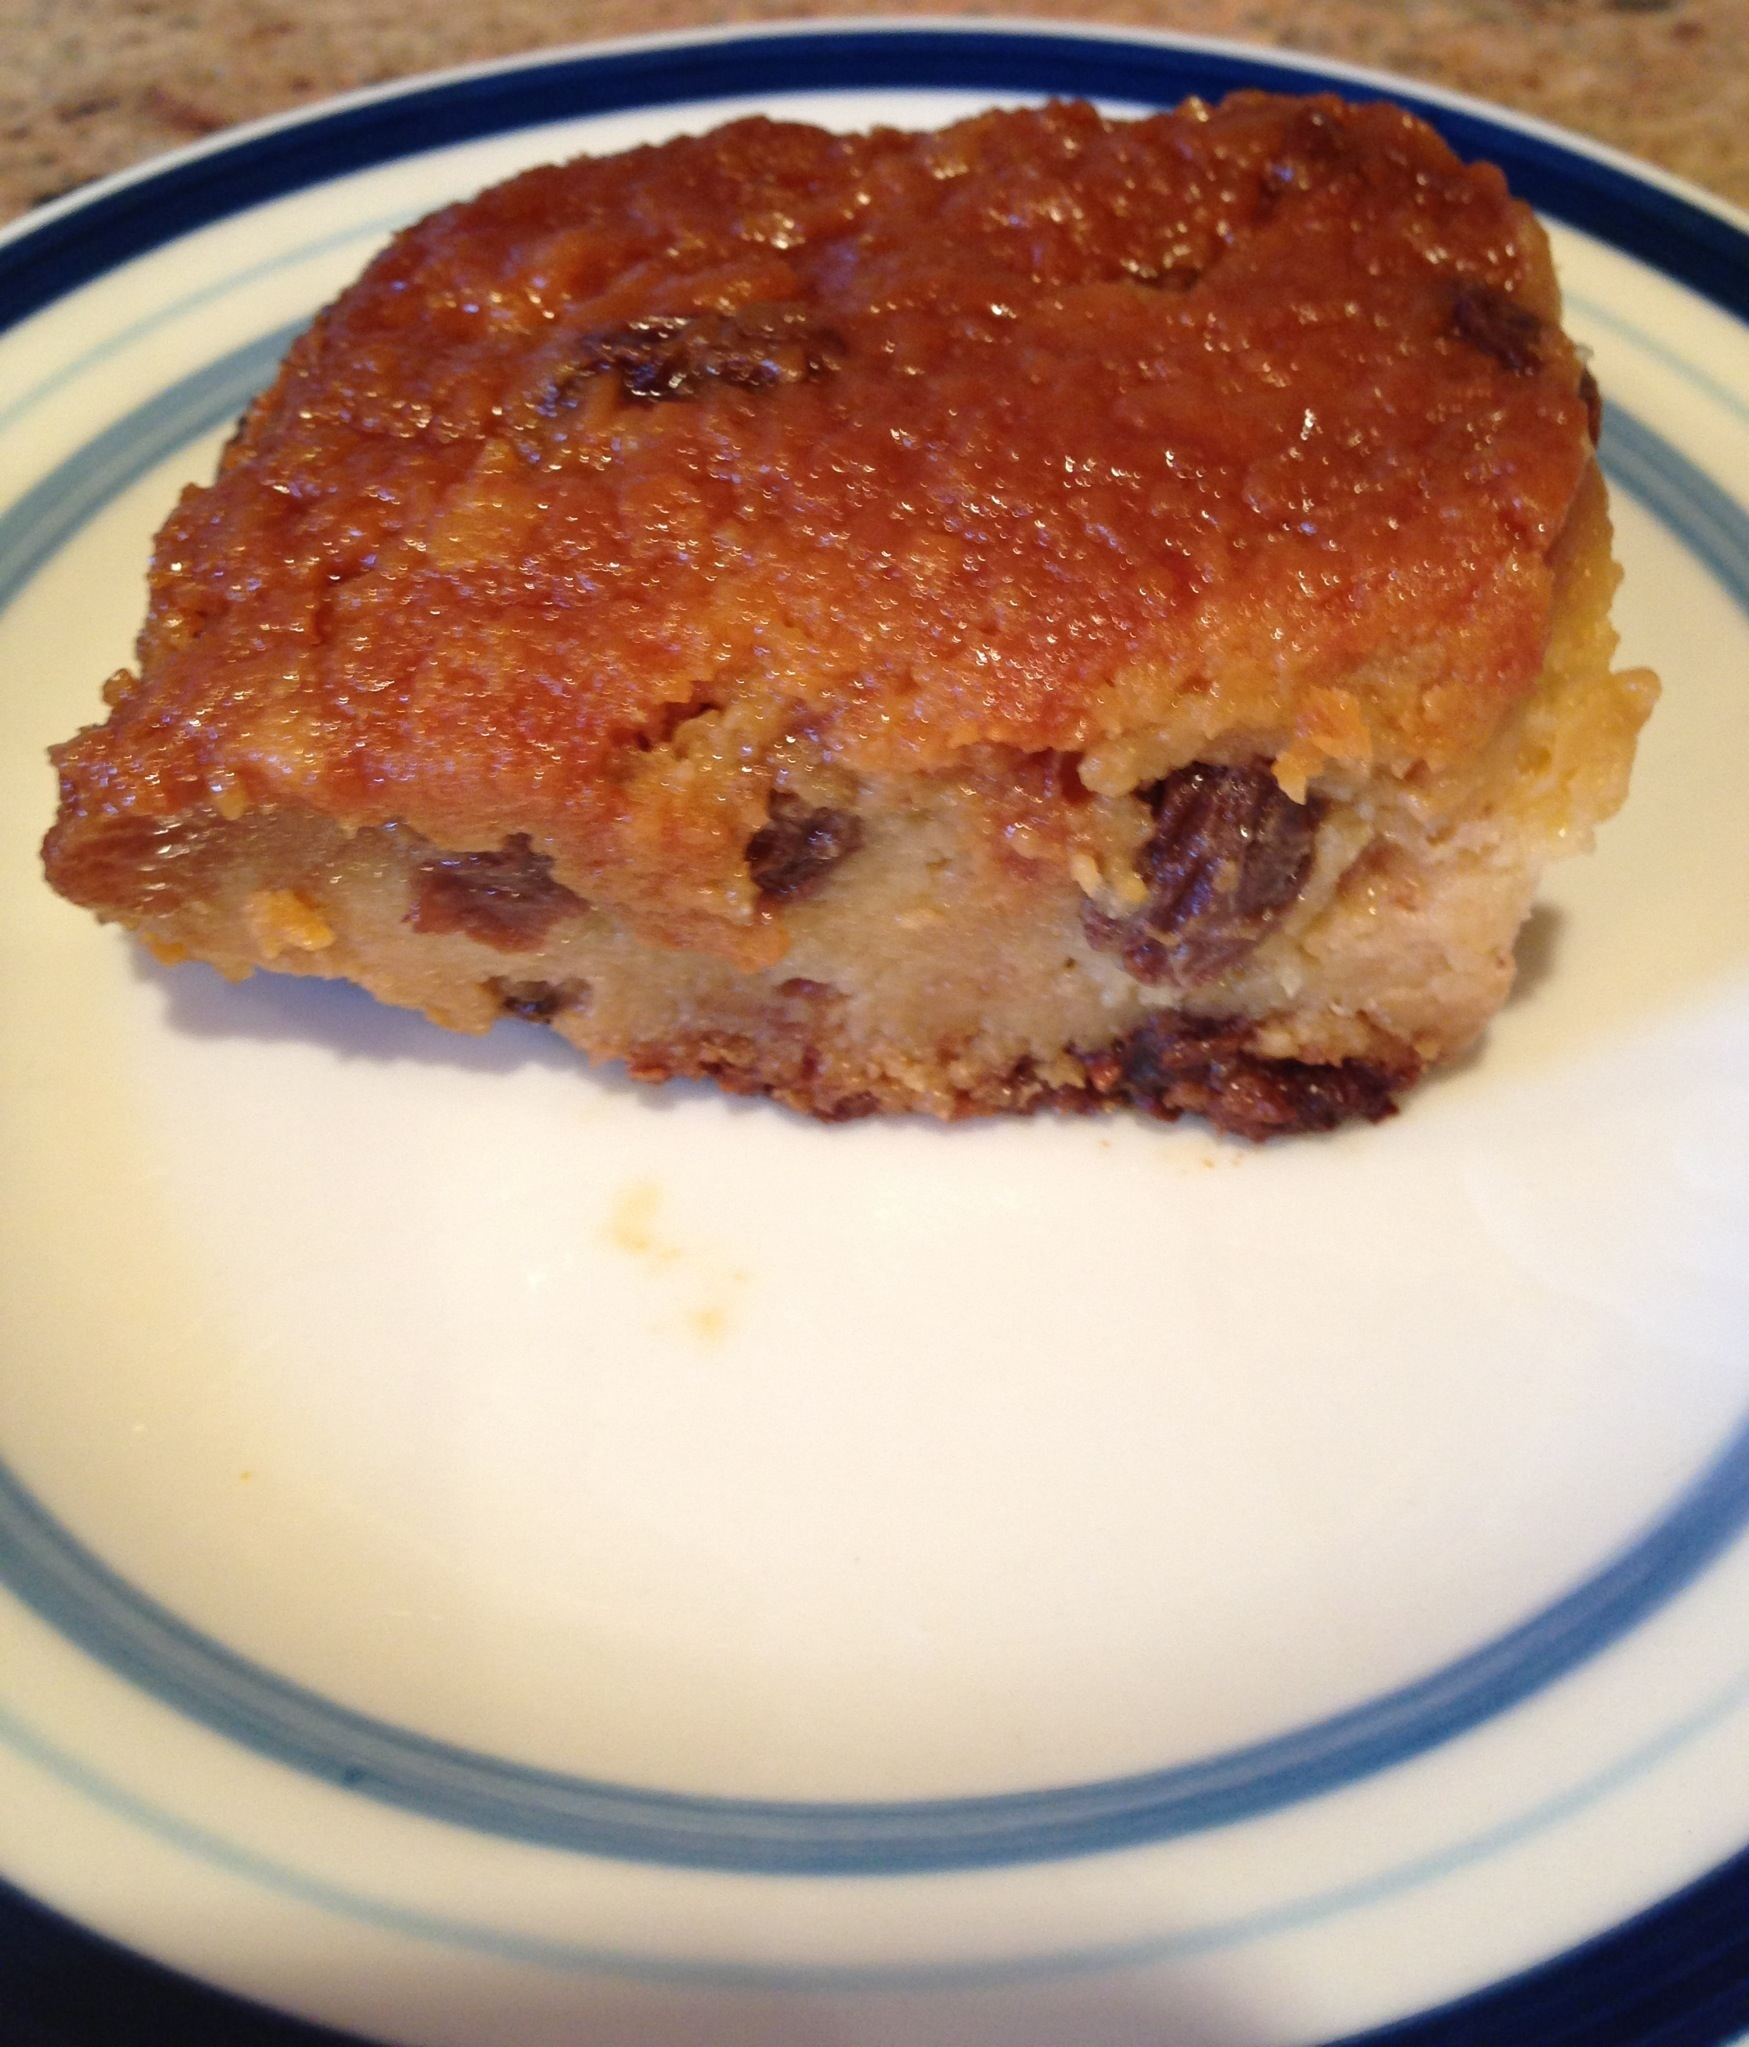 Peruvian Bread Pudding